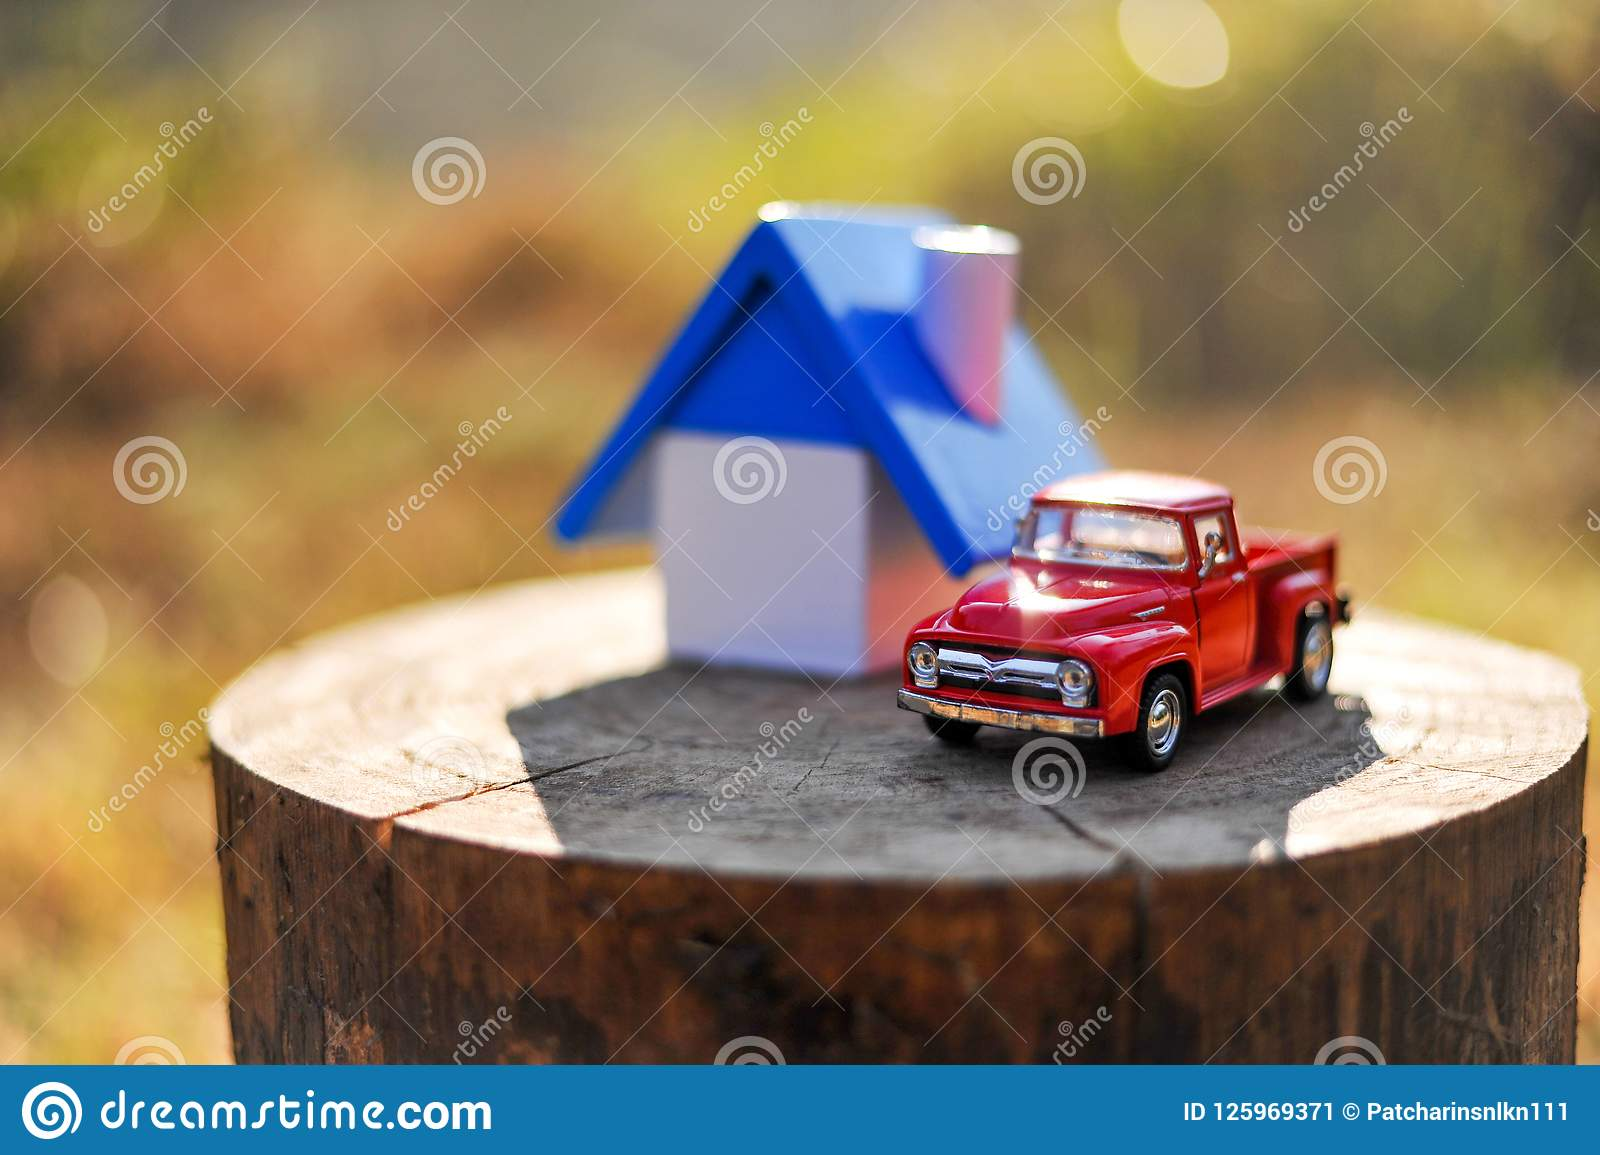 Home and small toy car. Put on the log In the woods and mountain